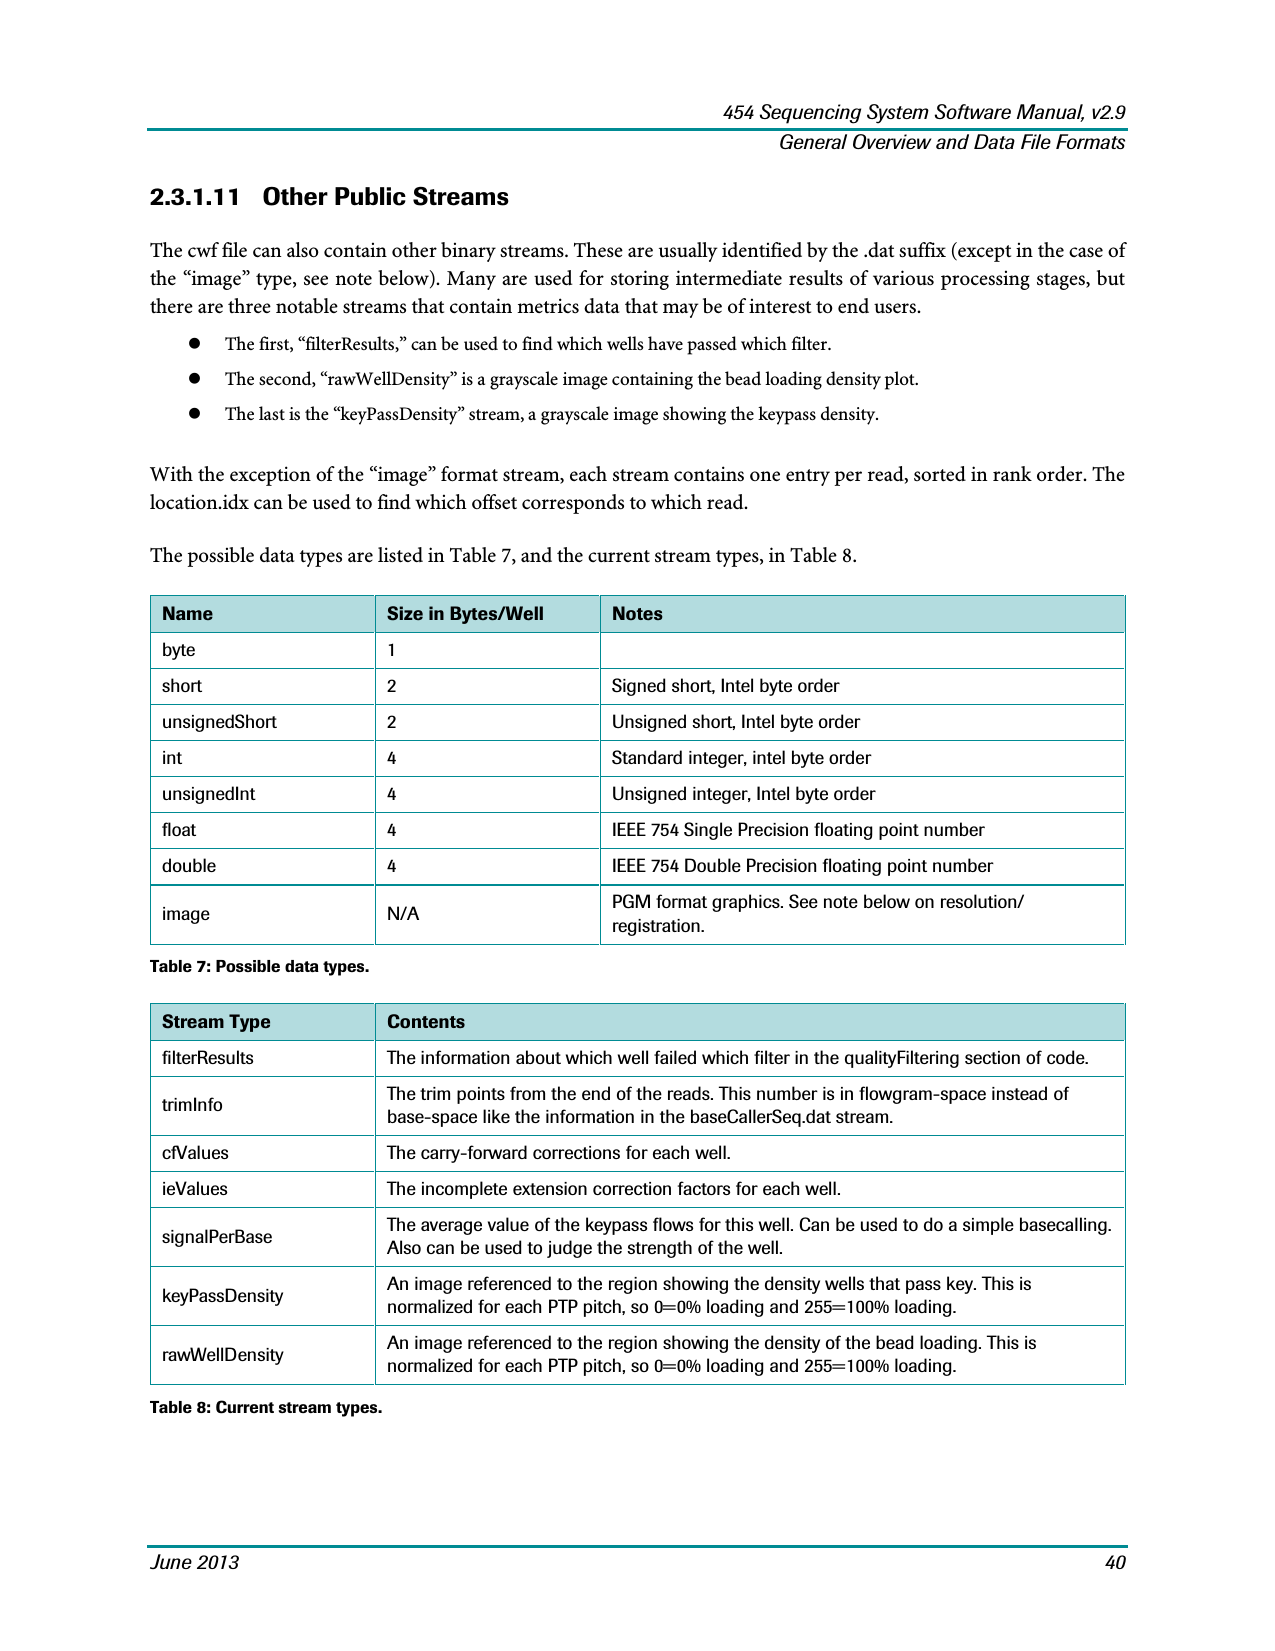 USM-00058.09_454SeqSys_SWManual-v2.9_Overview-40.png